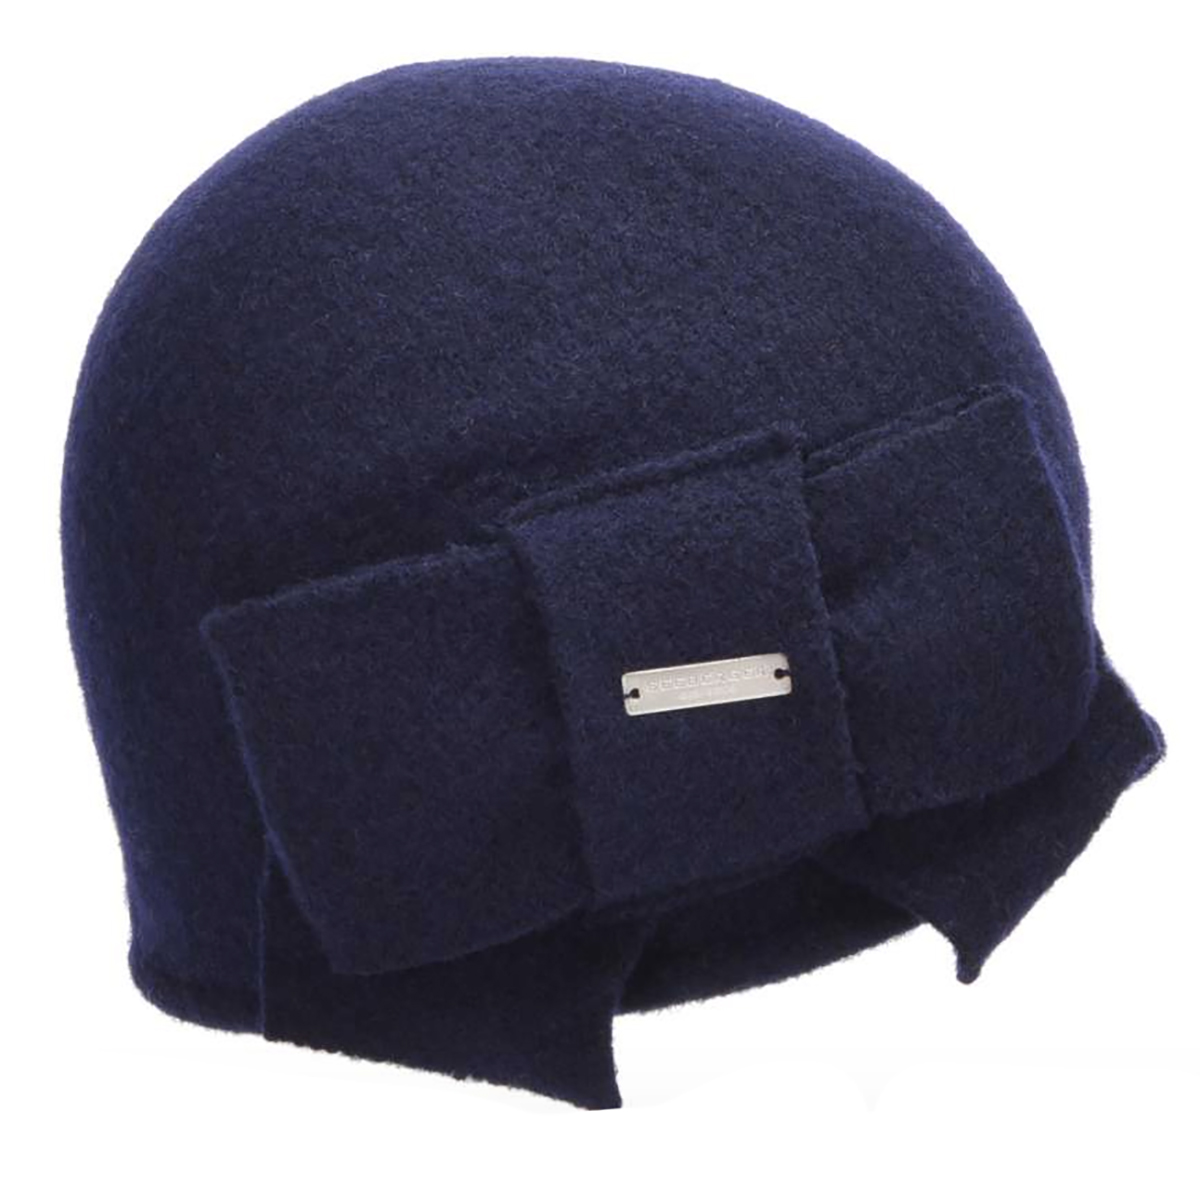 Seeberger Beanie With Bow - Flera Färgval